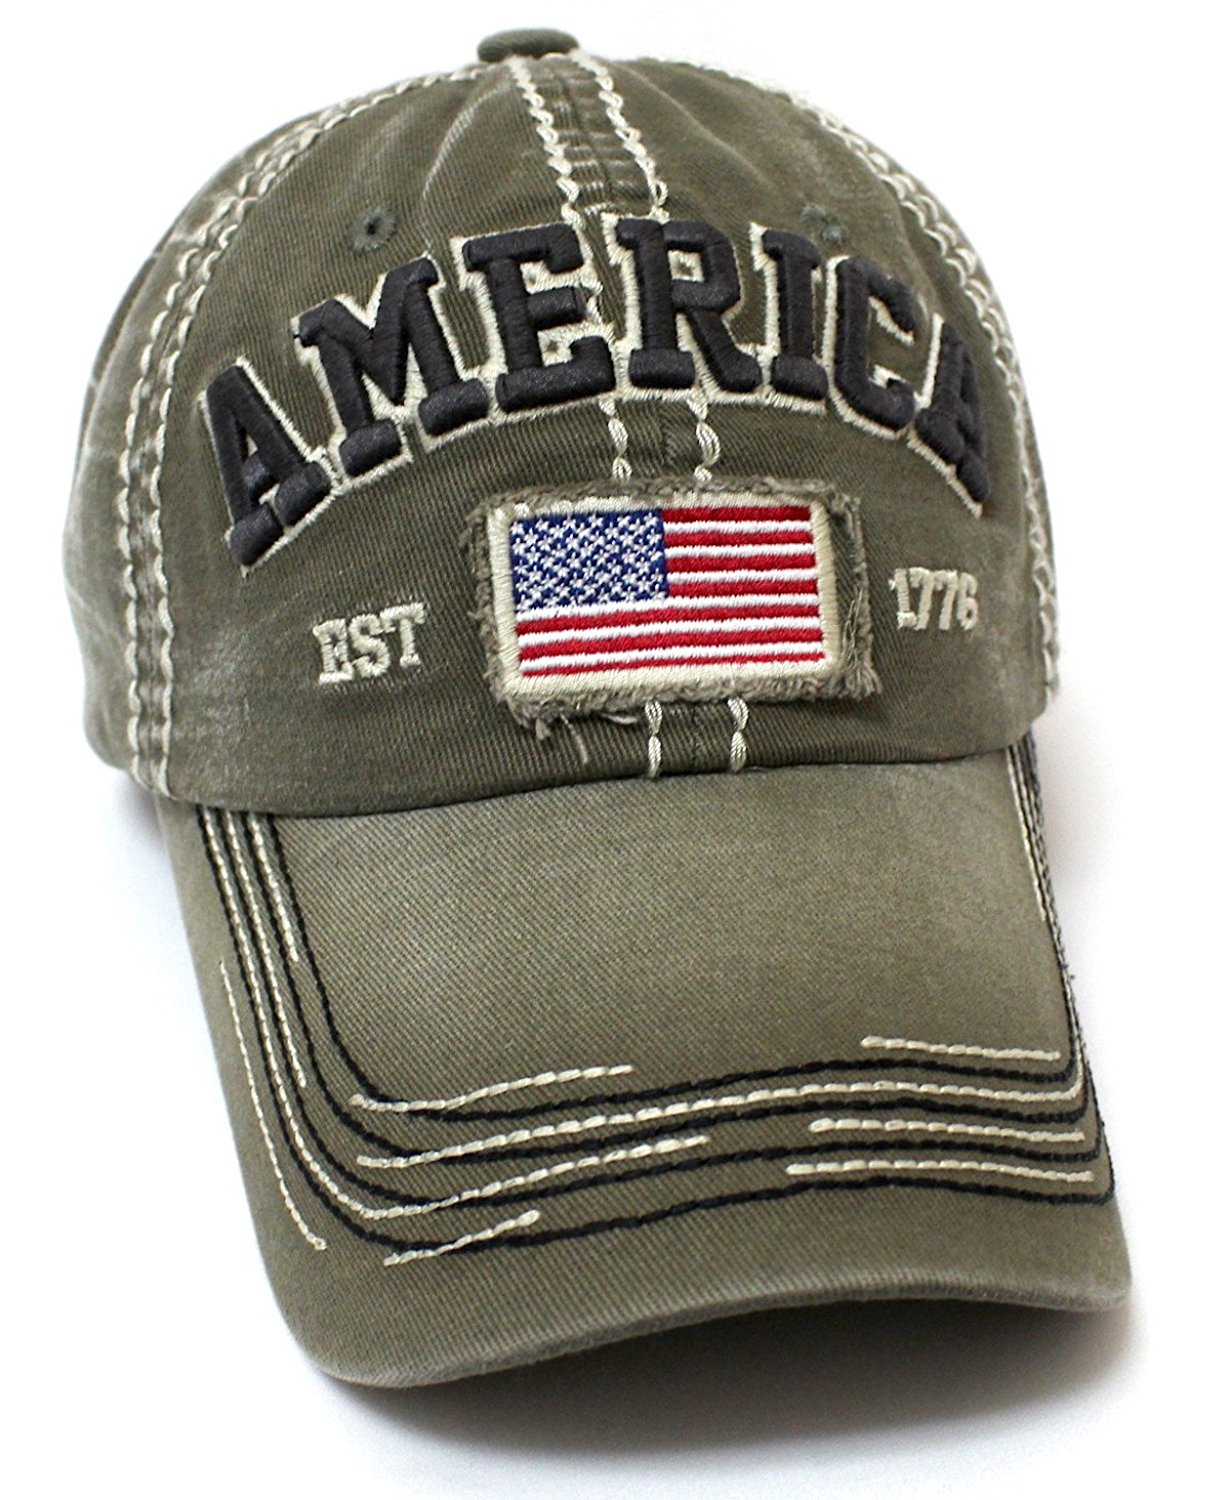 CAPS 'N VINTAGE Olive America EST. 1776 Flag Patch Embroidery Baseball Hat - Caps 'N Vintage